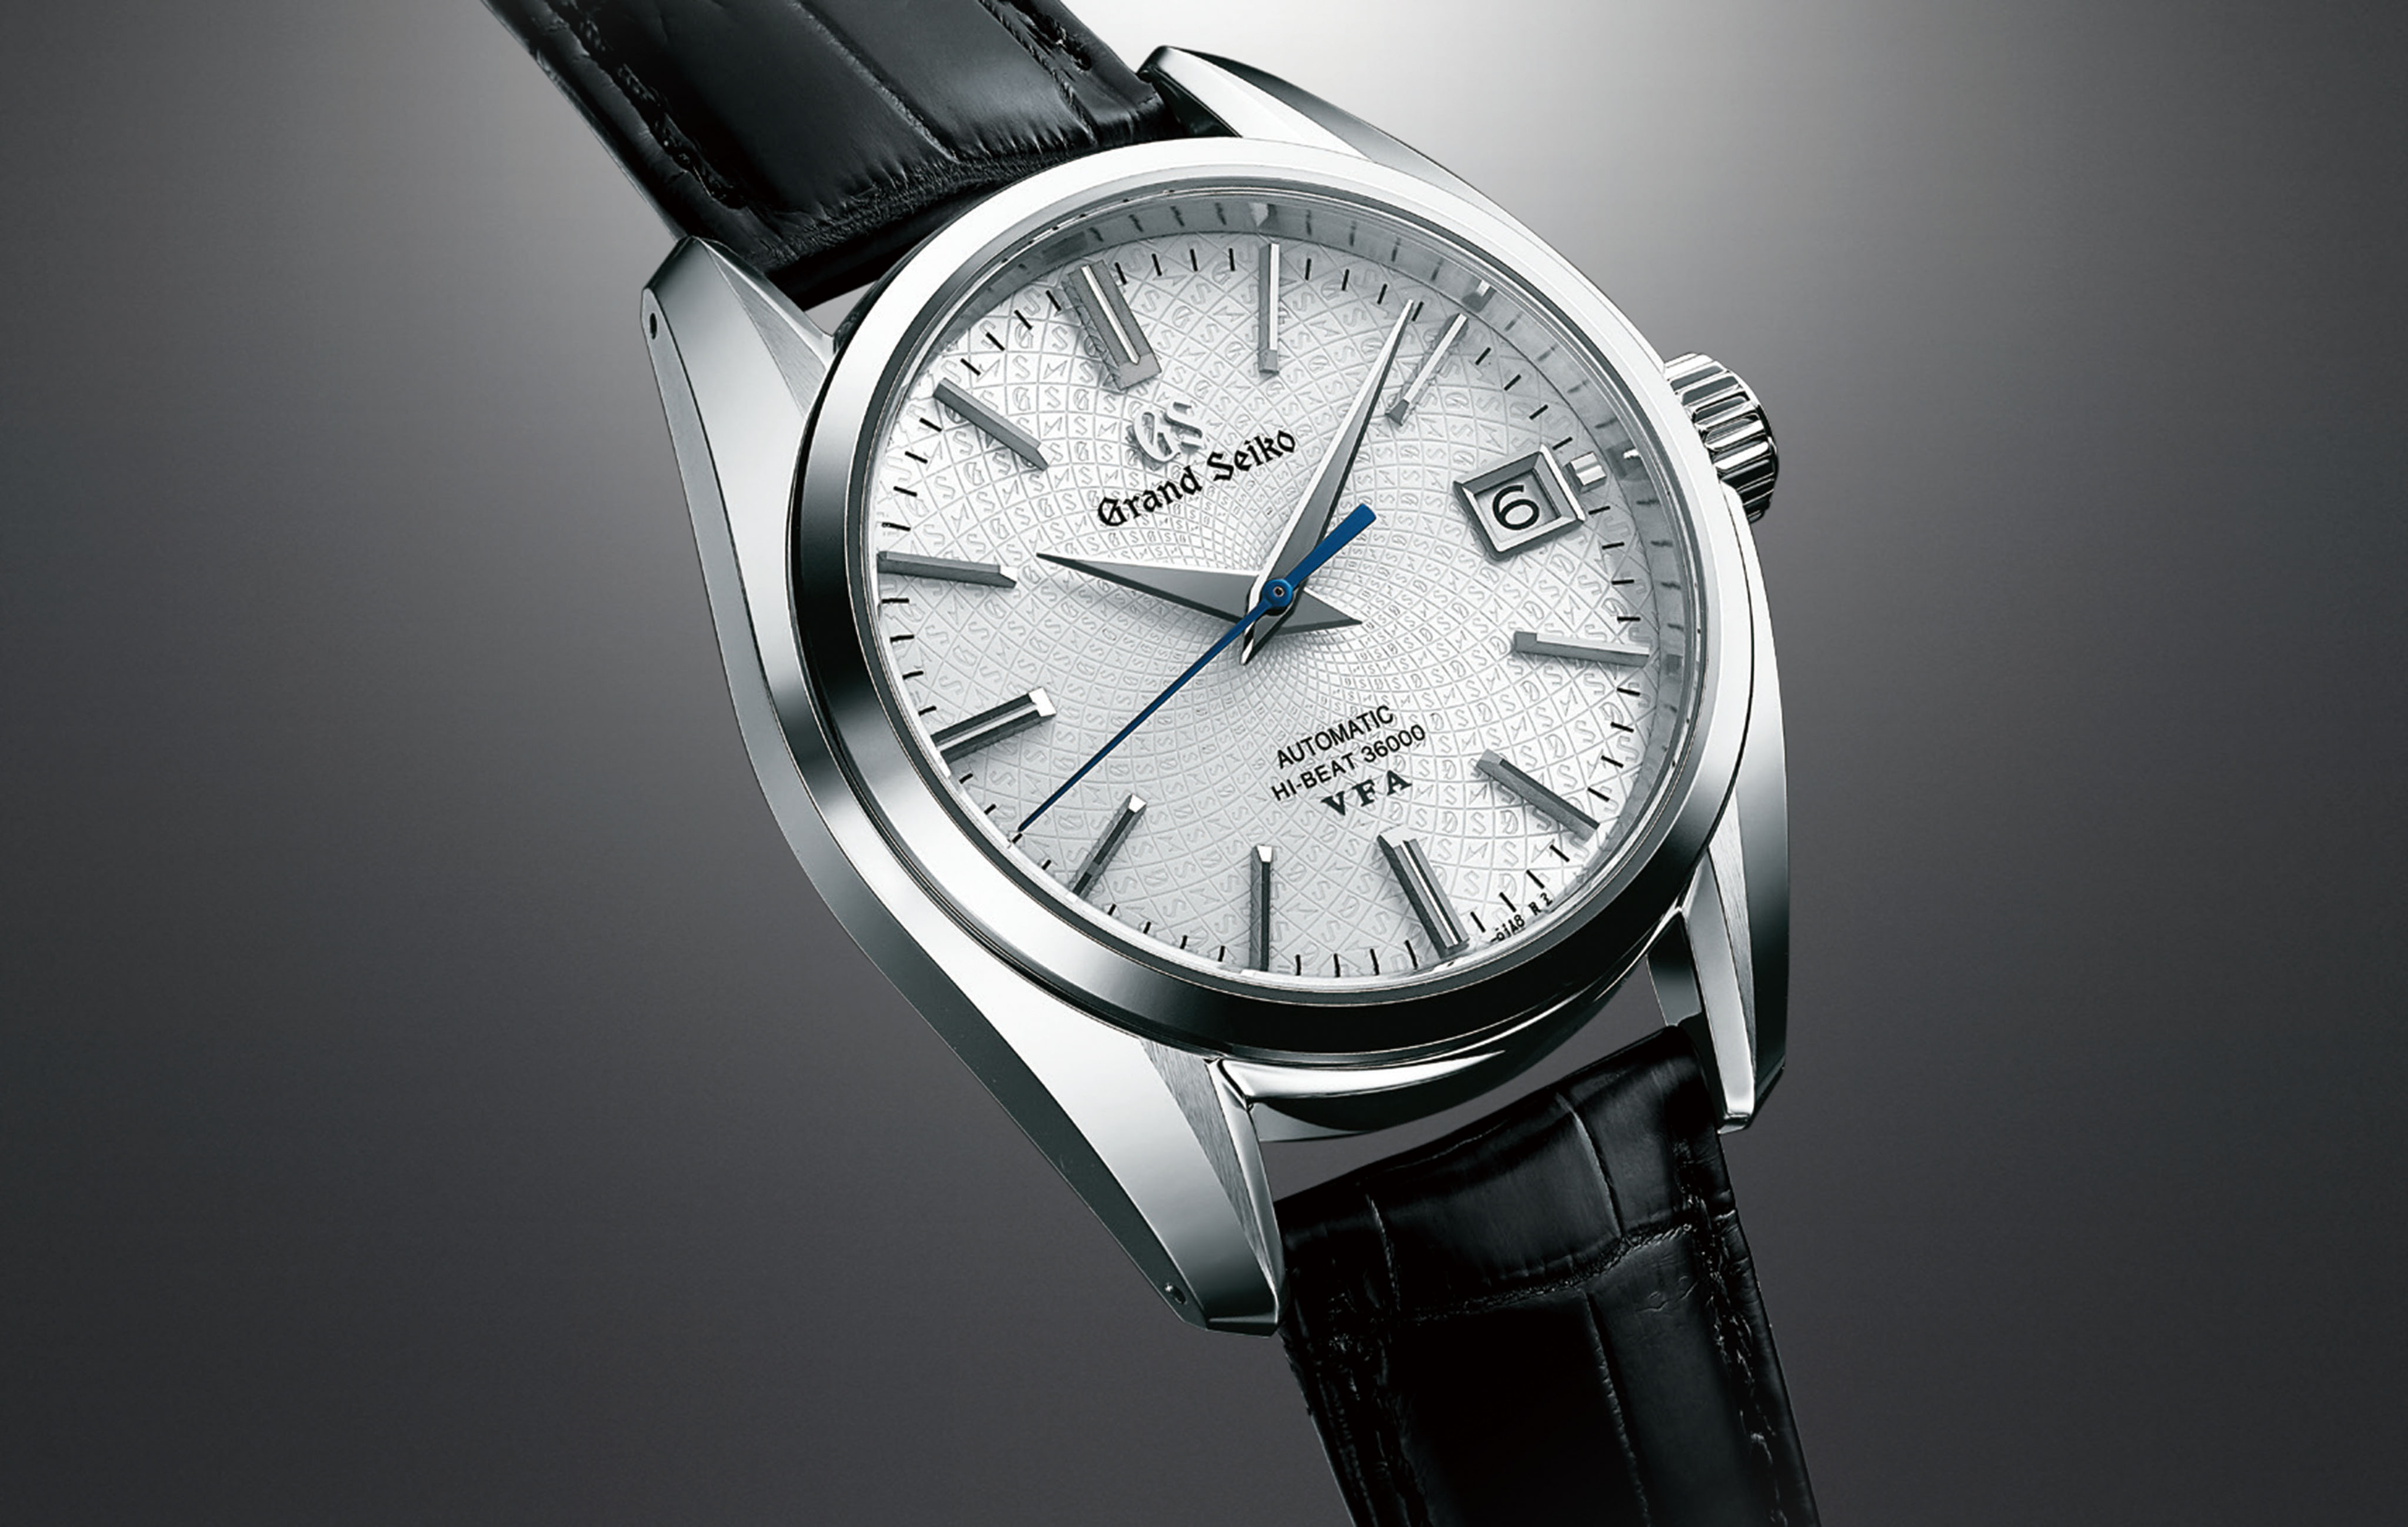 To celebrate the 20th anniversary of the 9S caliber, Grand Seiko created three limited edition watches, which pay homage to the movement born in 1998.